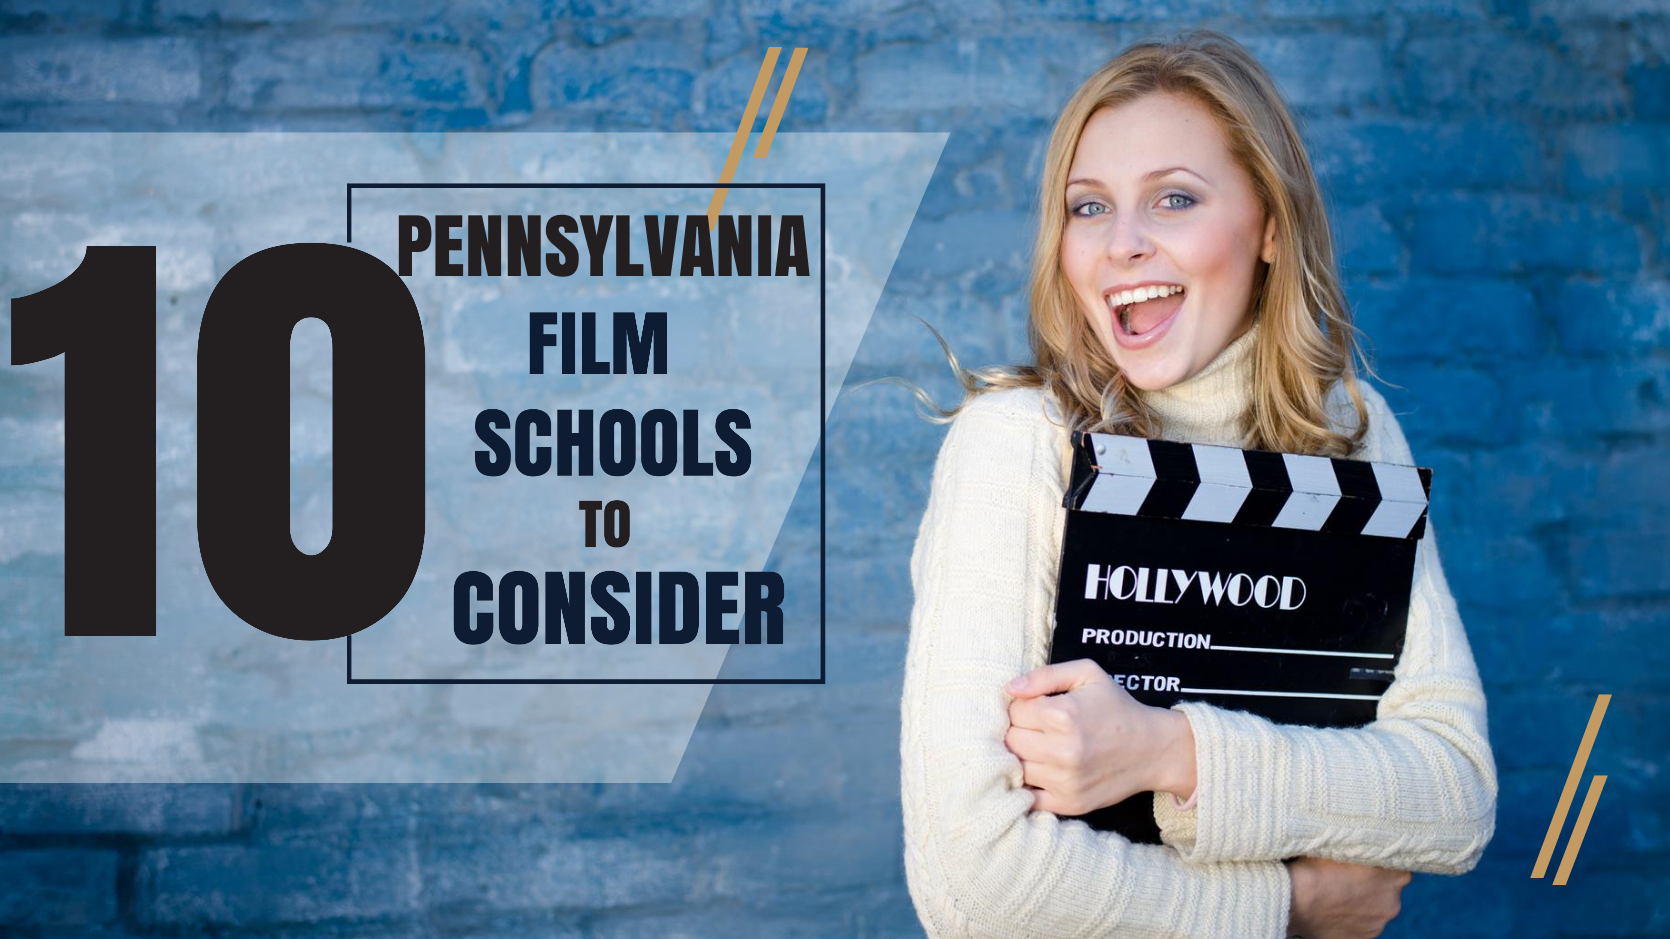 Top 10 Pennsylvania film schools for filmmakers to consider